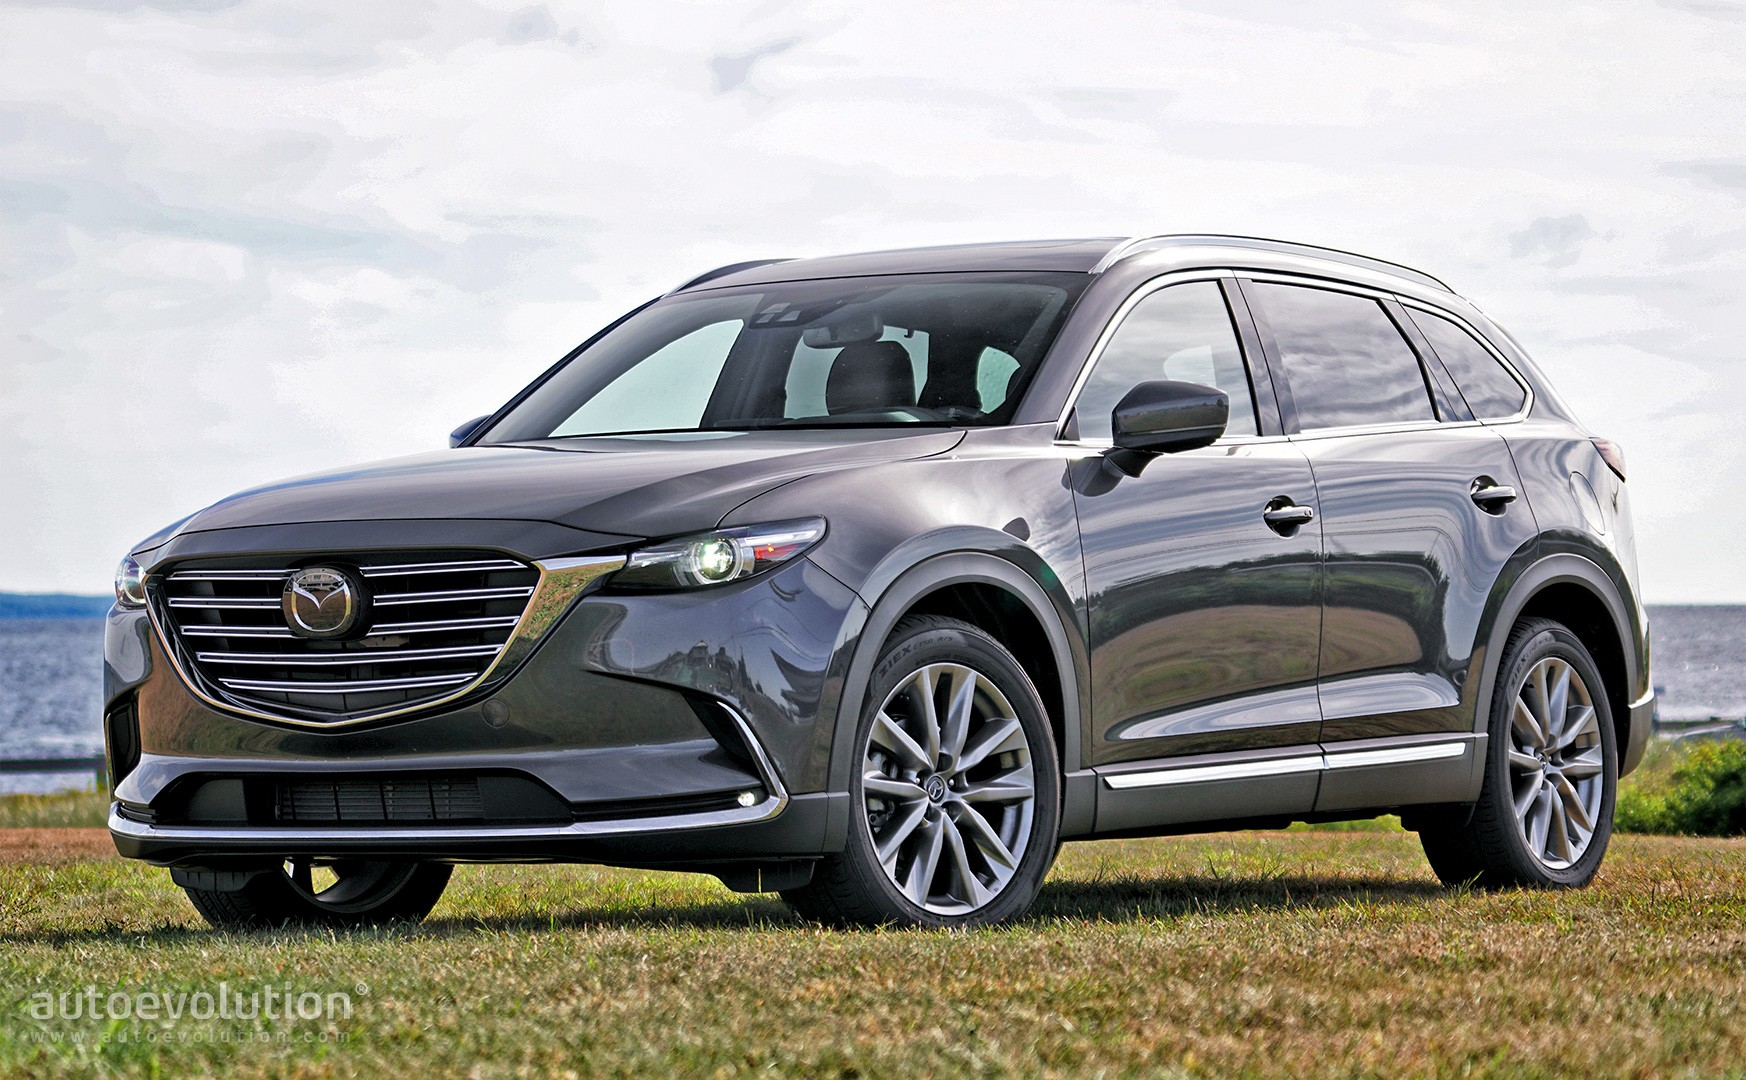 driven: 2017 mazda cx-9 signature awd - autoevolution